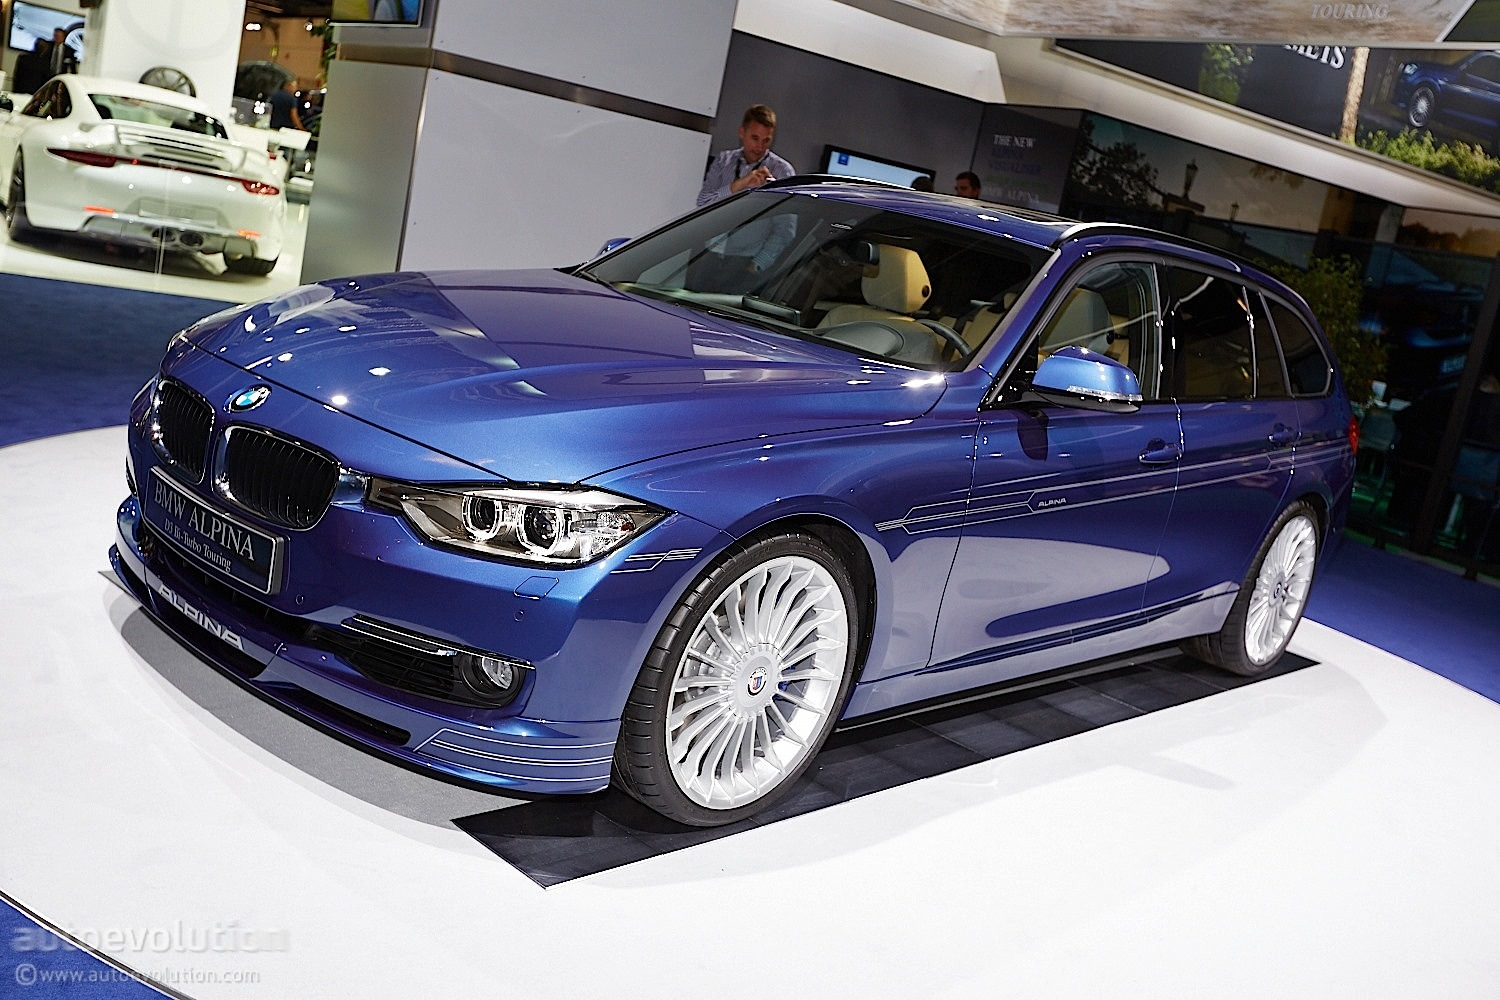 alpina d3 bi turbo makes world debut at 2013 frankfurt live photos autoevolution. Black Bedroom Furniture Sets. Home Design Ideas